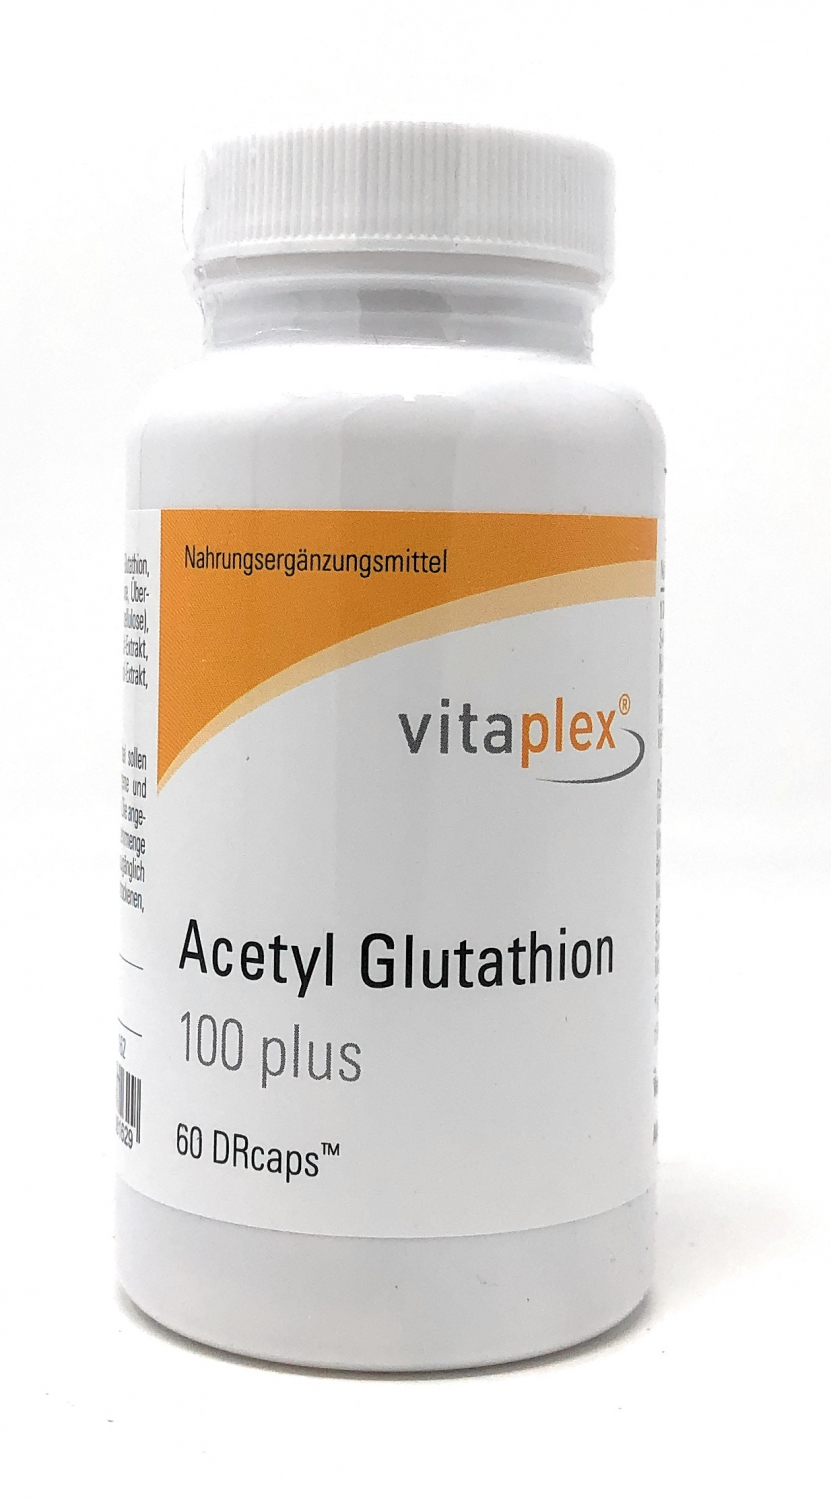 Vitaplex Acetyl Glutathion 100 plus 60 DRcaps